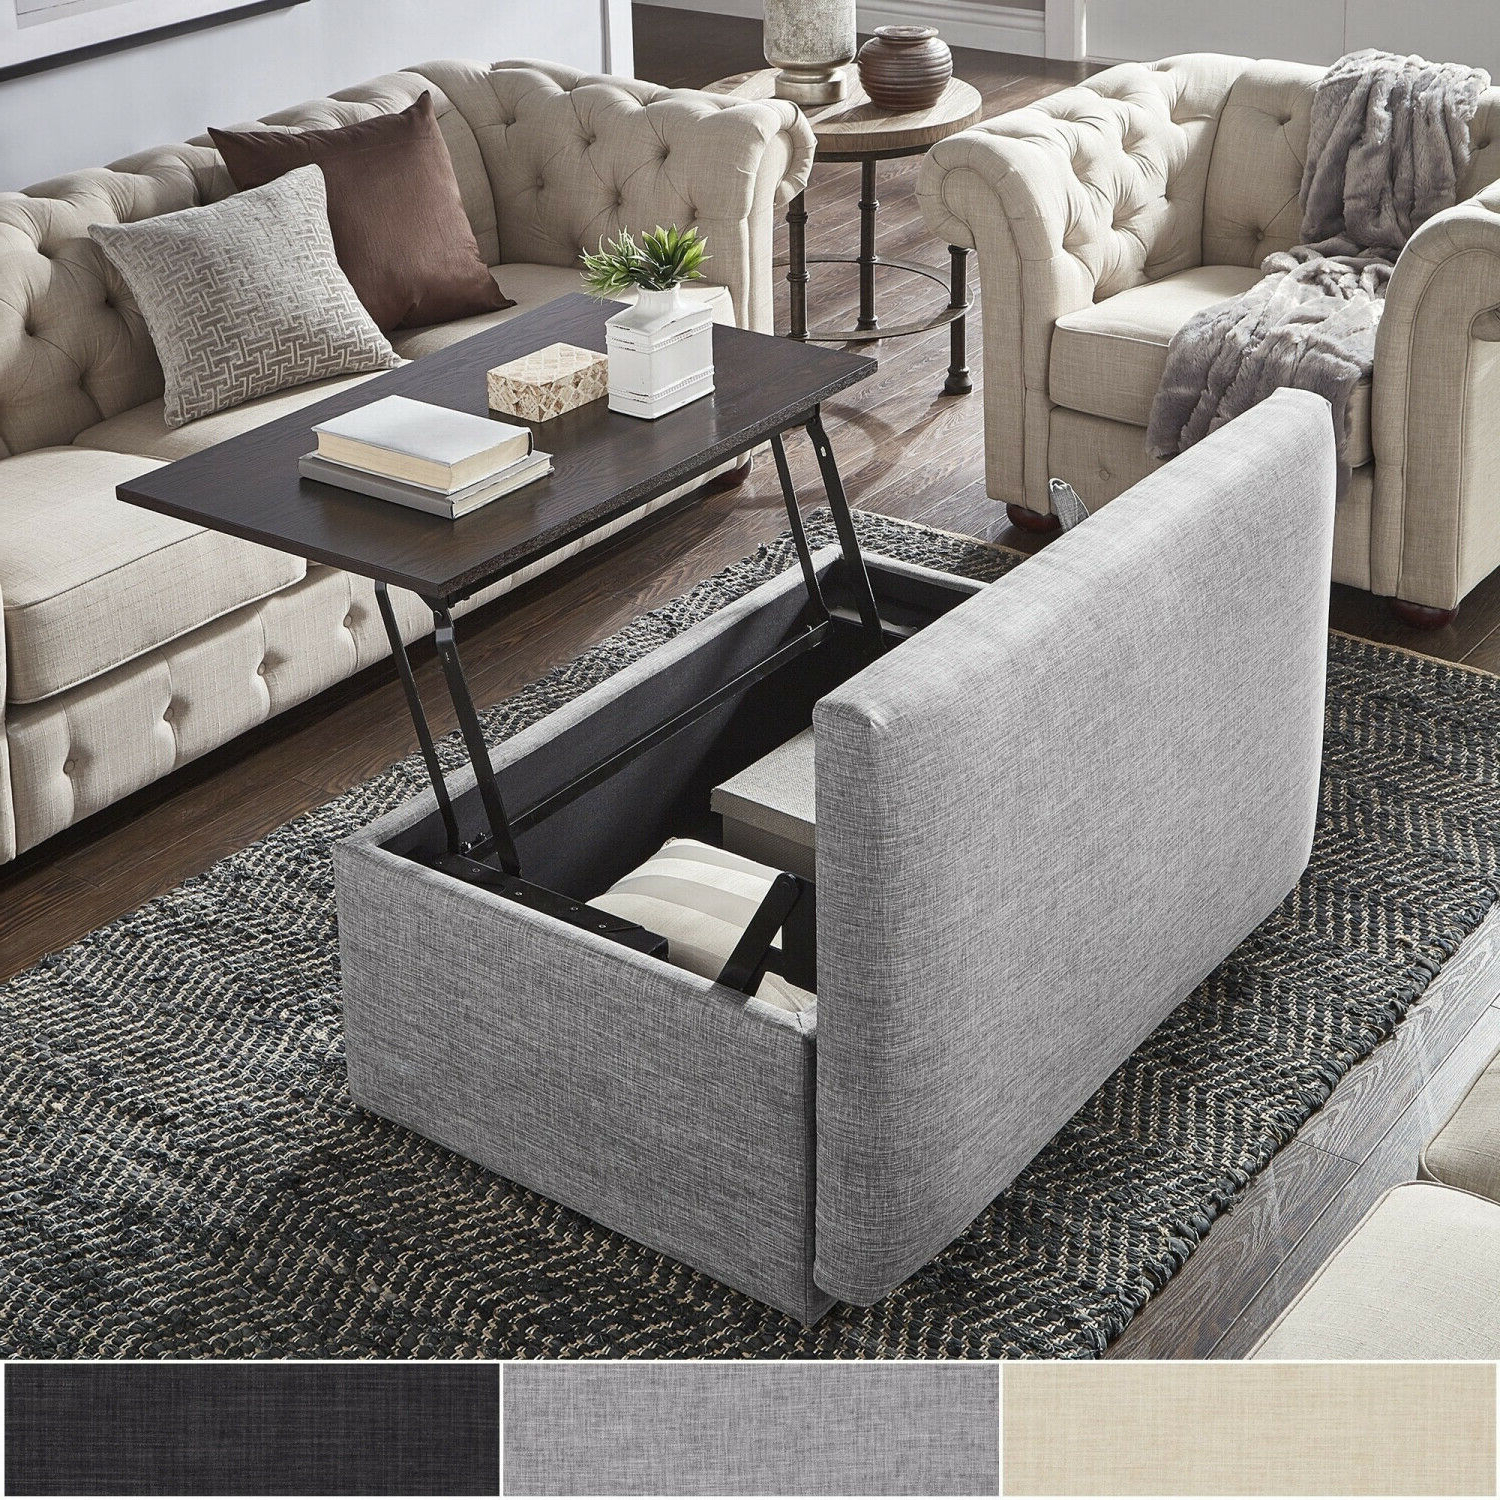 Landen Lift Top Upholstered Storage Ottoman Coffee Tableinspire Q  Artisan Throughout Well Liked Lennon Pine Square Storage Ottoman Coffee Tables (View 5 of 20)